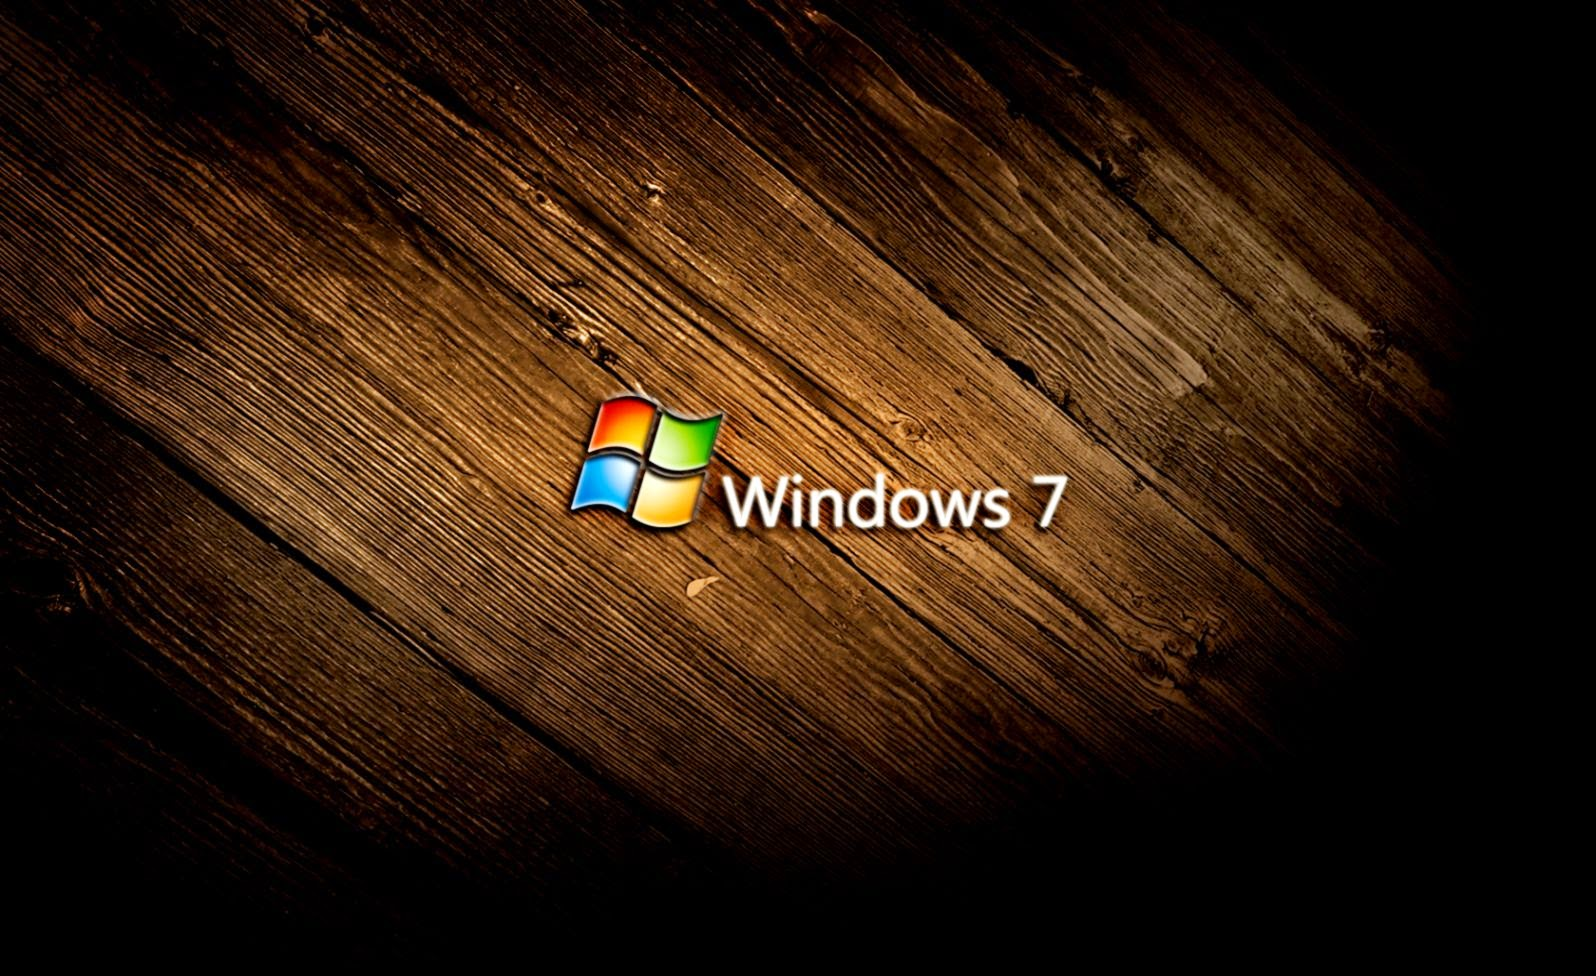 HD Wallpapers for 2015 Windows 7   HD 1920x1080p wallpaper download